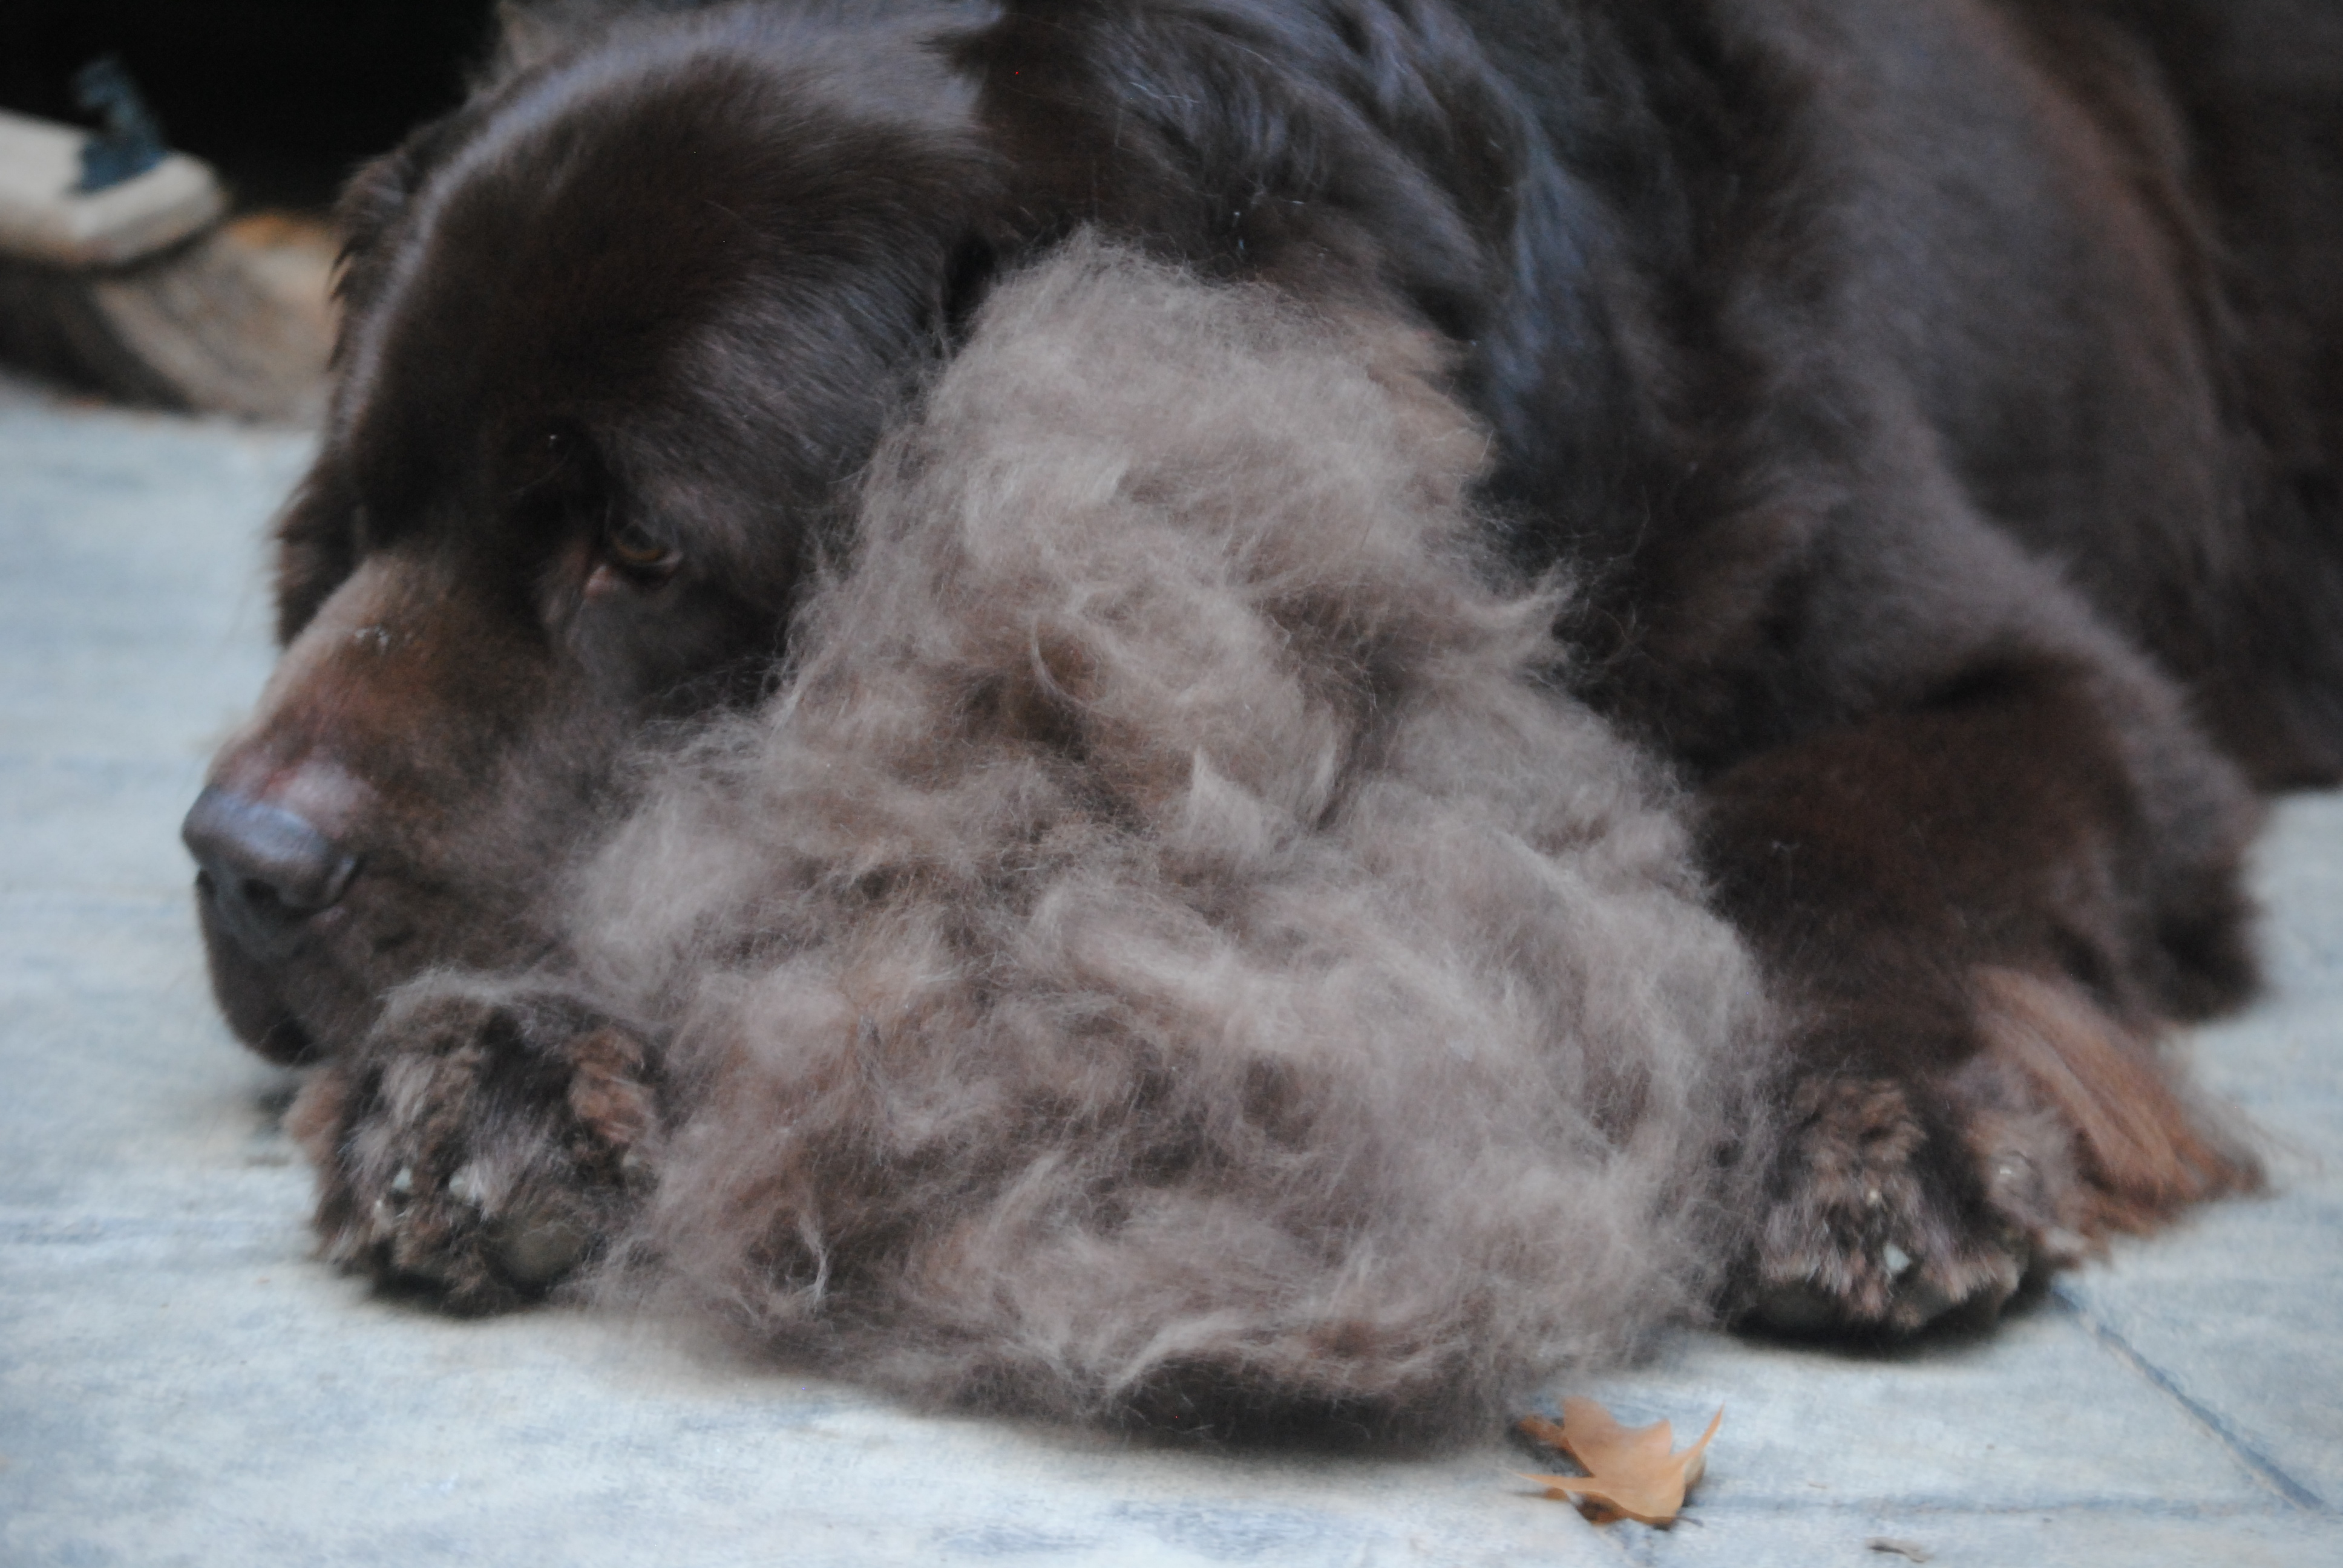 training full diet temperament asp info shedding grown pictures puppies sheds bernedoodle dog